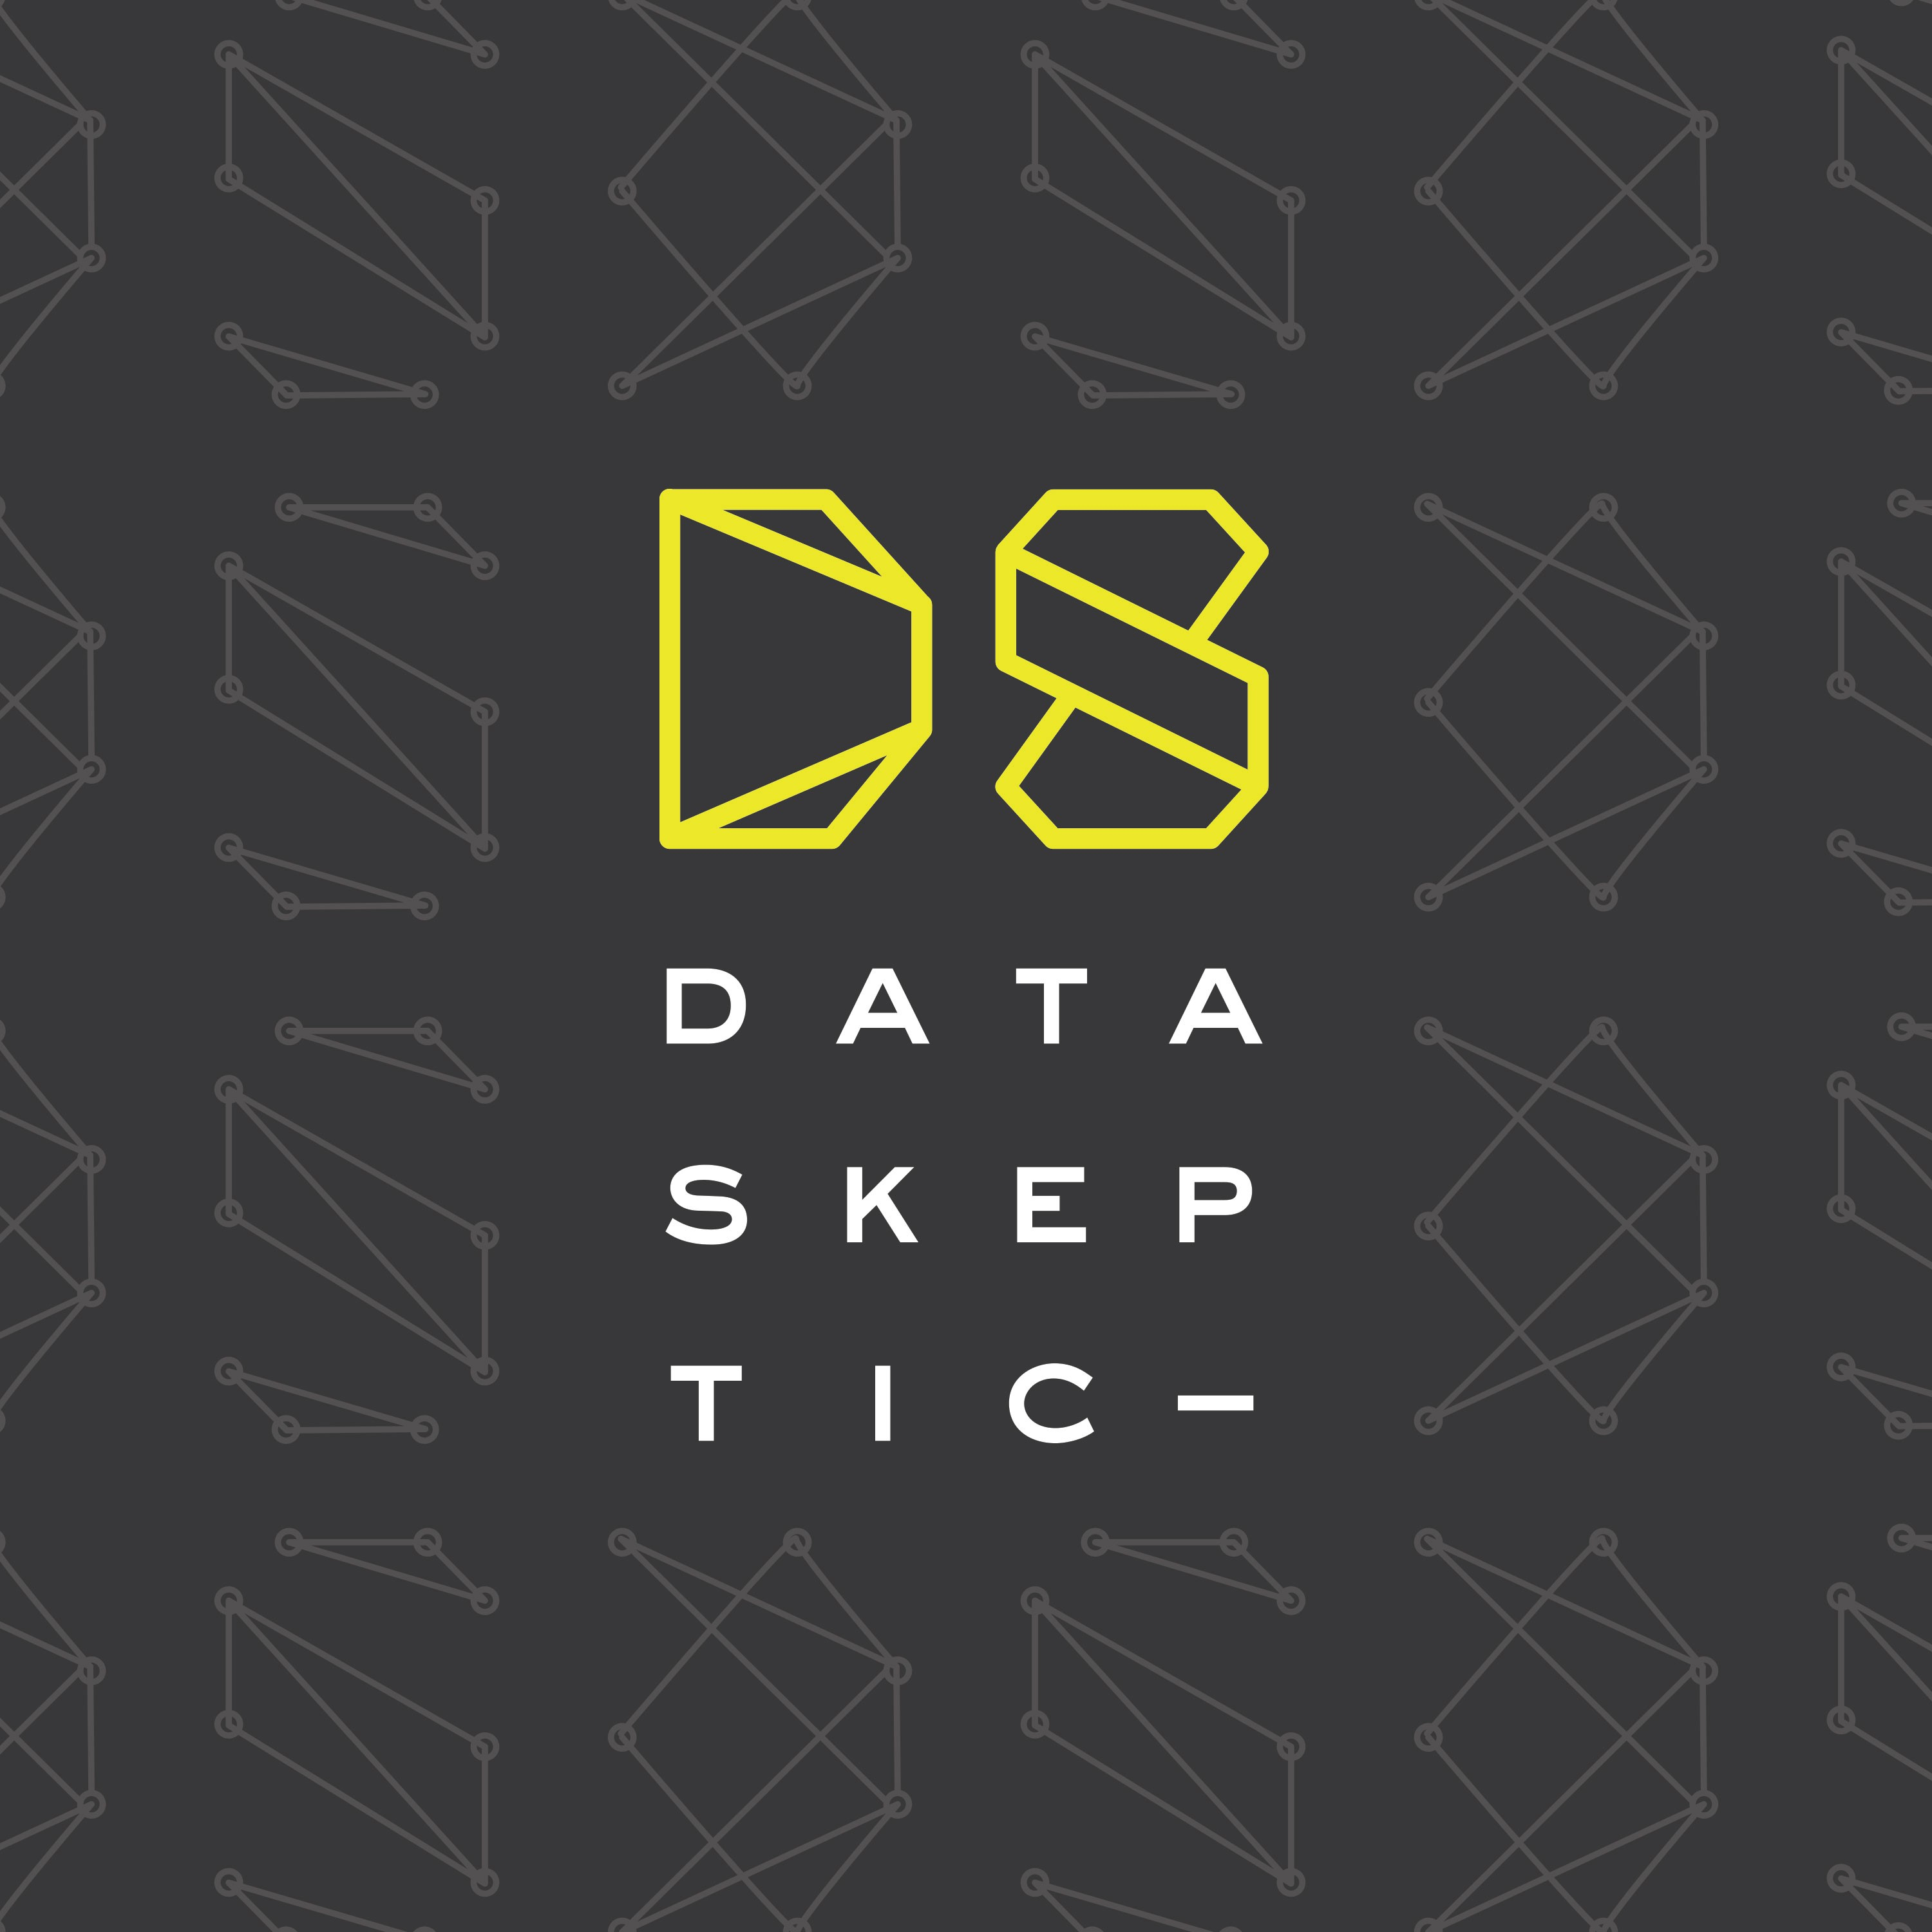 How To Learn Data Science - My path - Towards Data Science